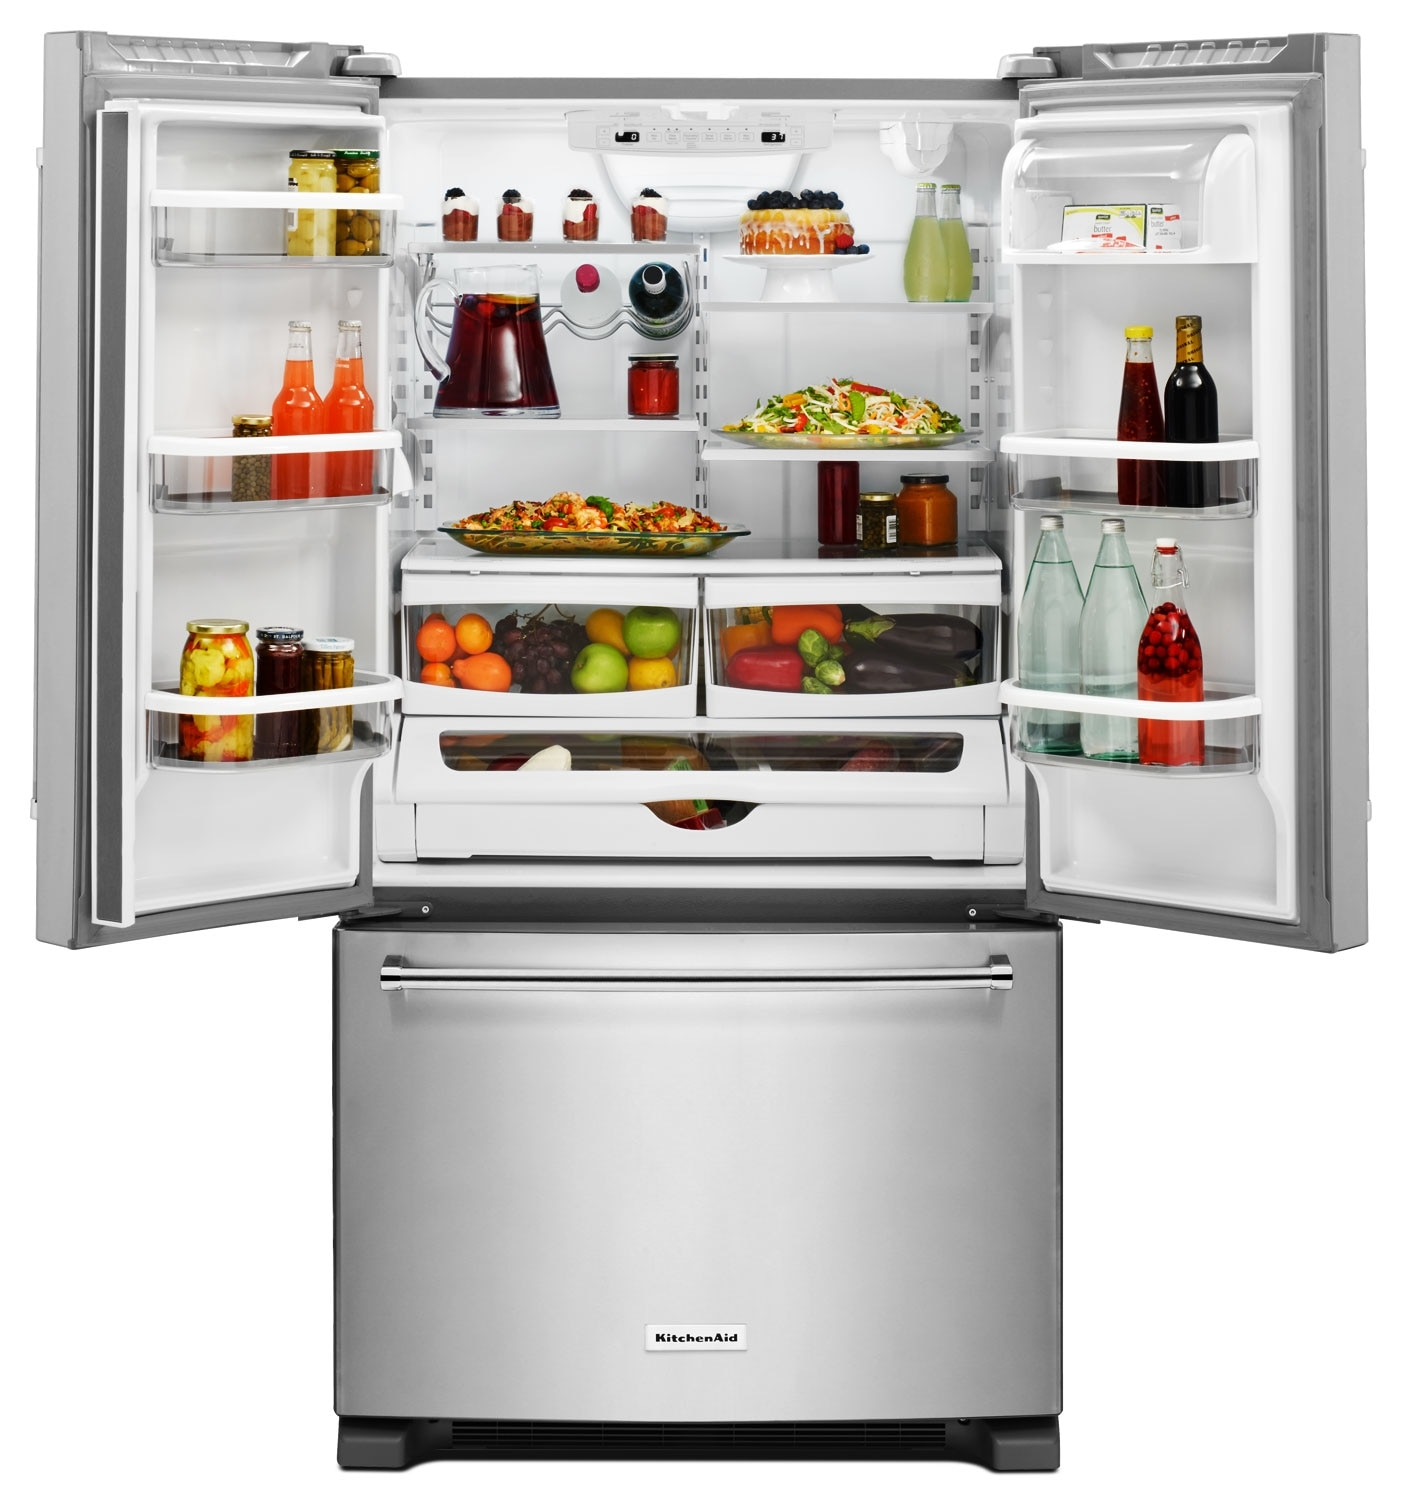 KitchenAid 20 Cu. Ft. French Door Refrigerator with ...